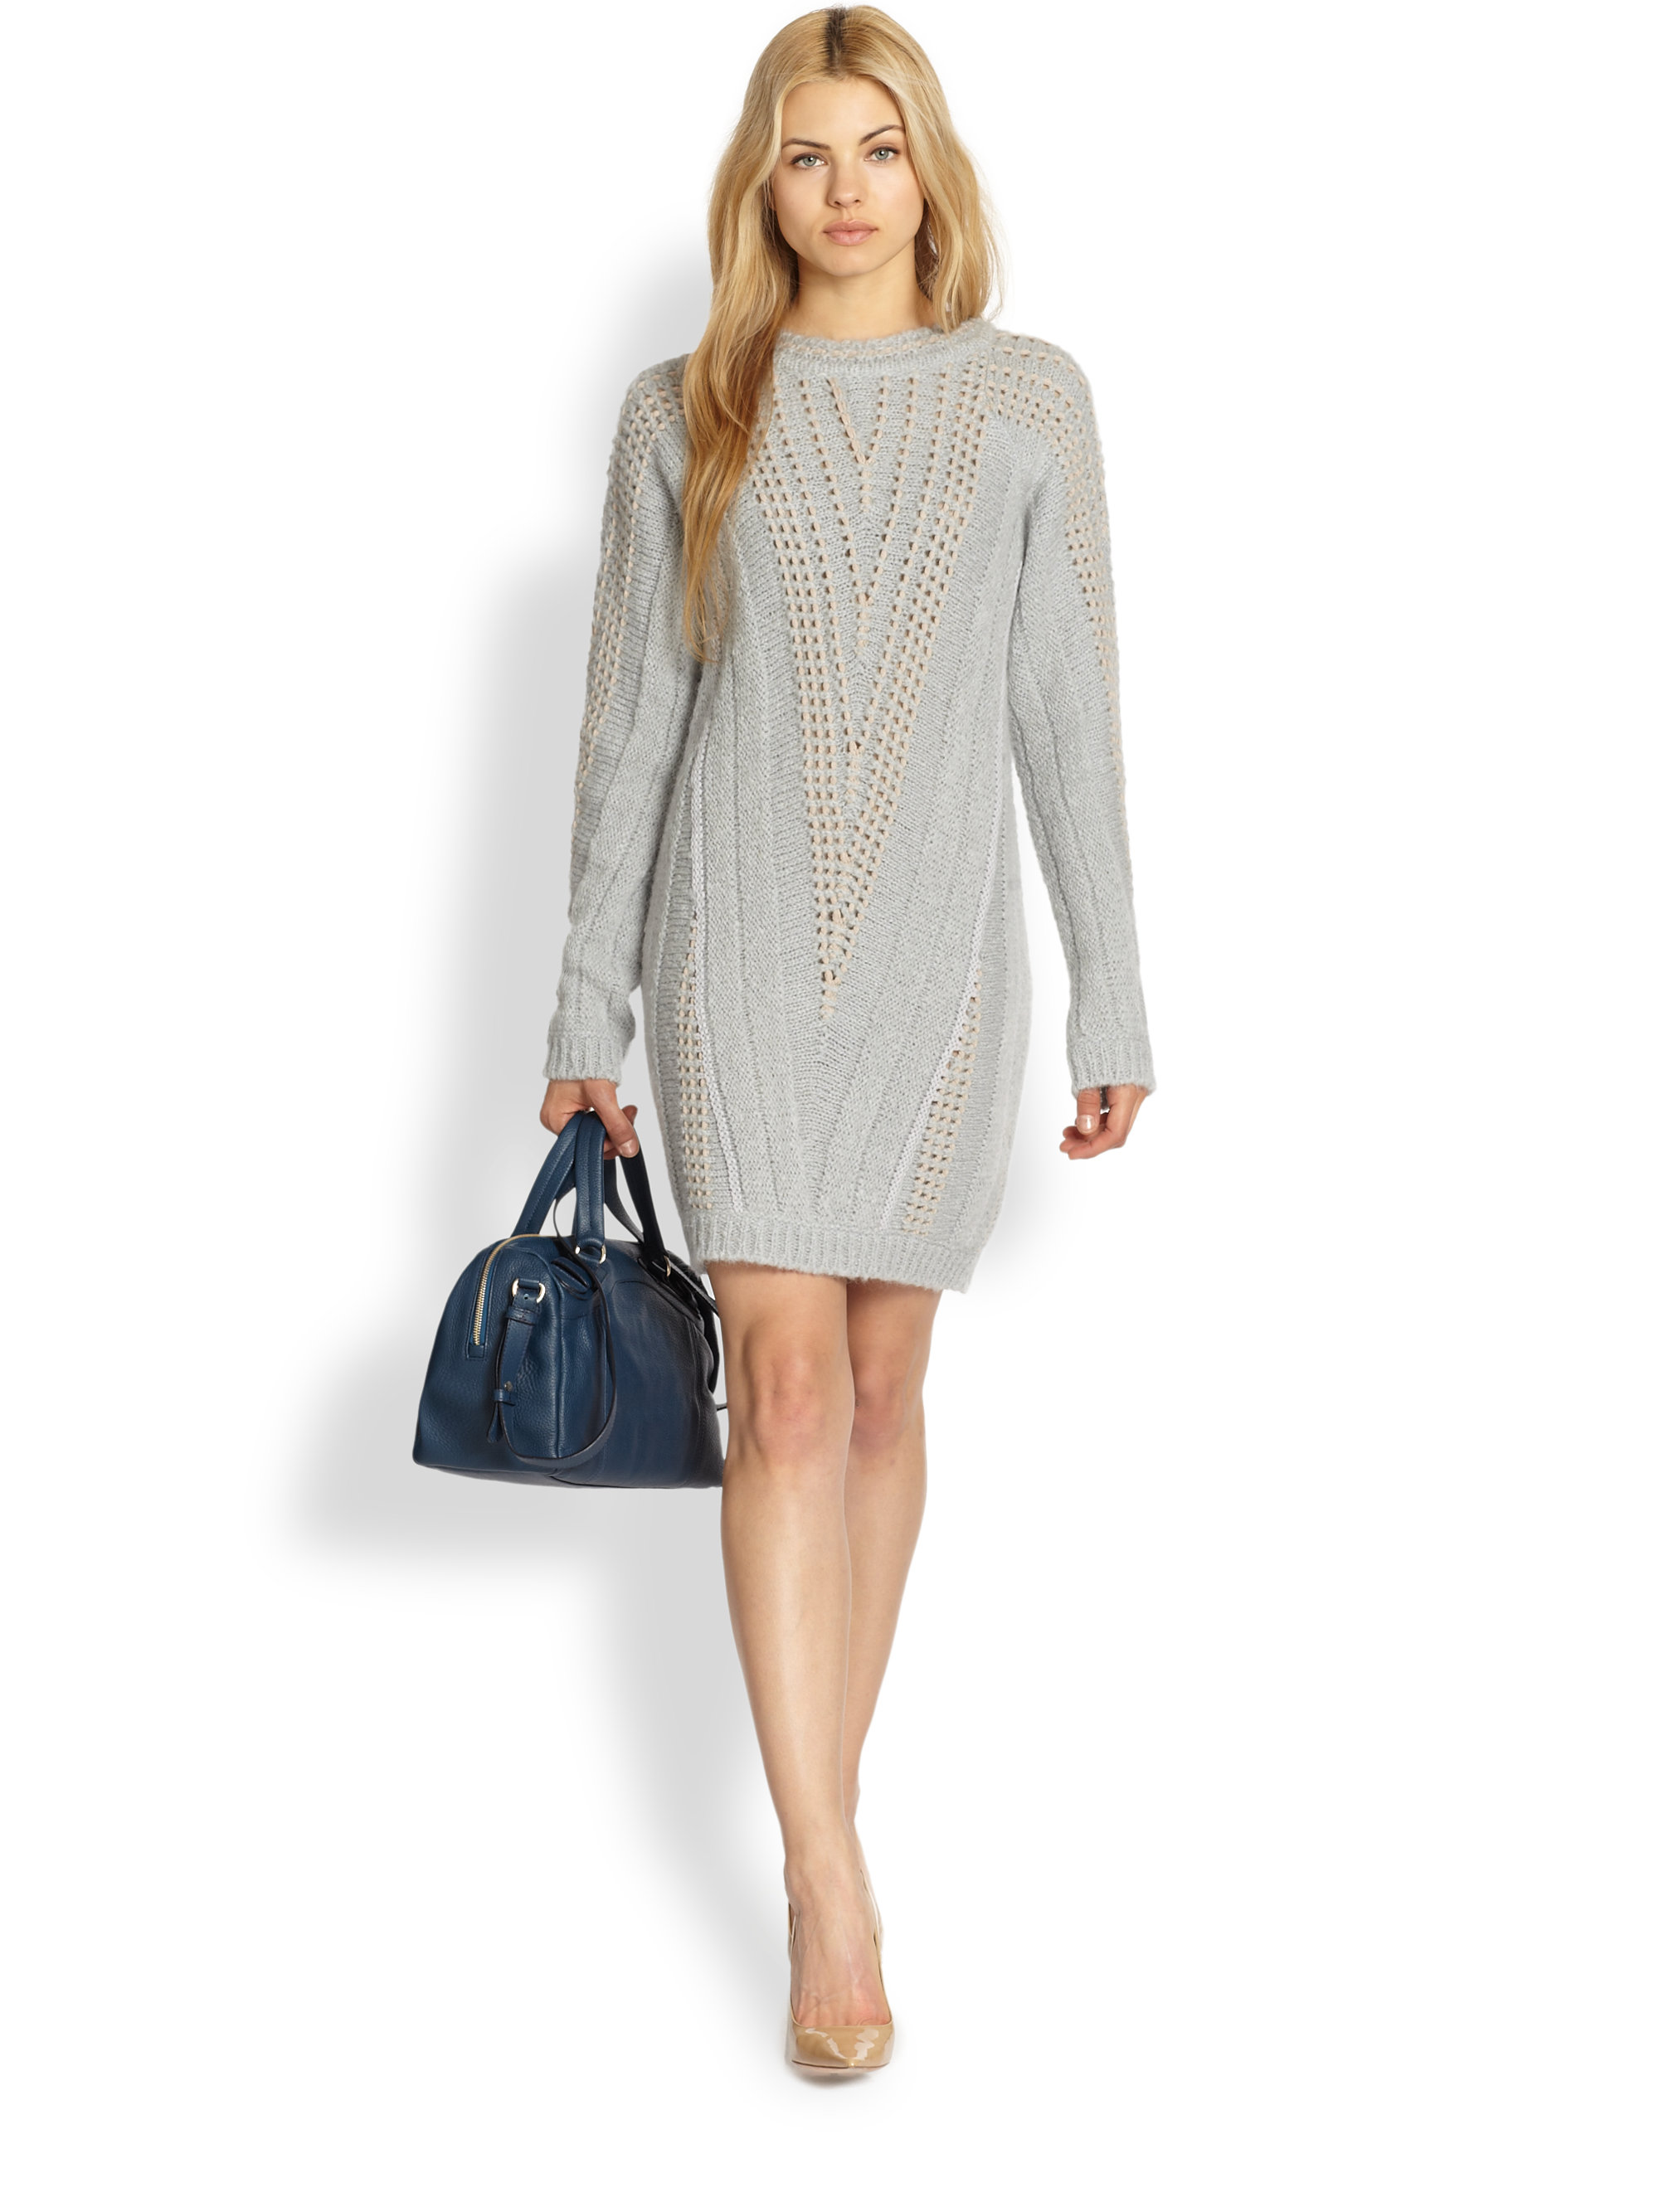 In By Stitched Sweater Ribbed Gray Lyst V Dress Chloé See Contrast VpqSzUM